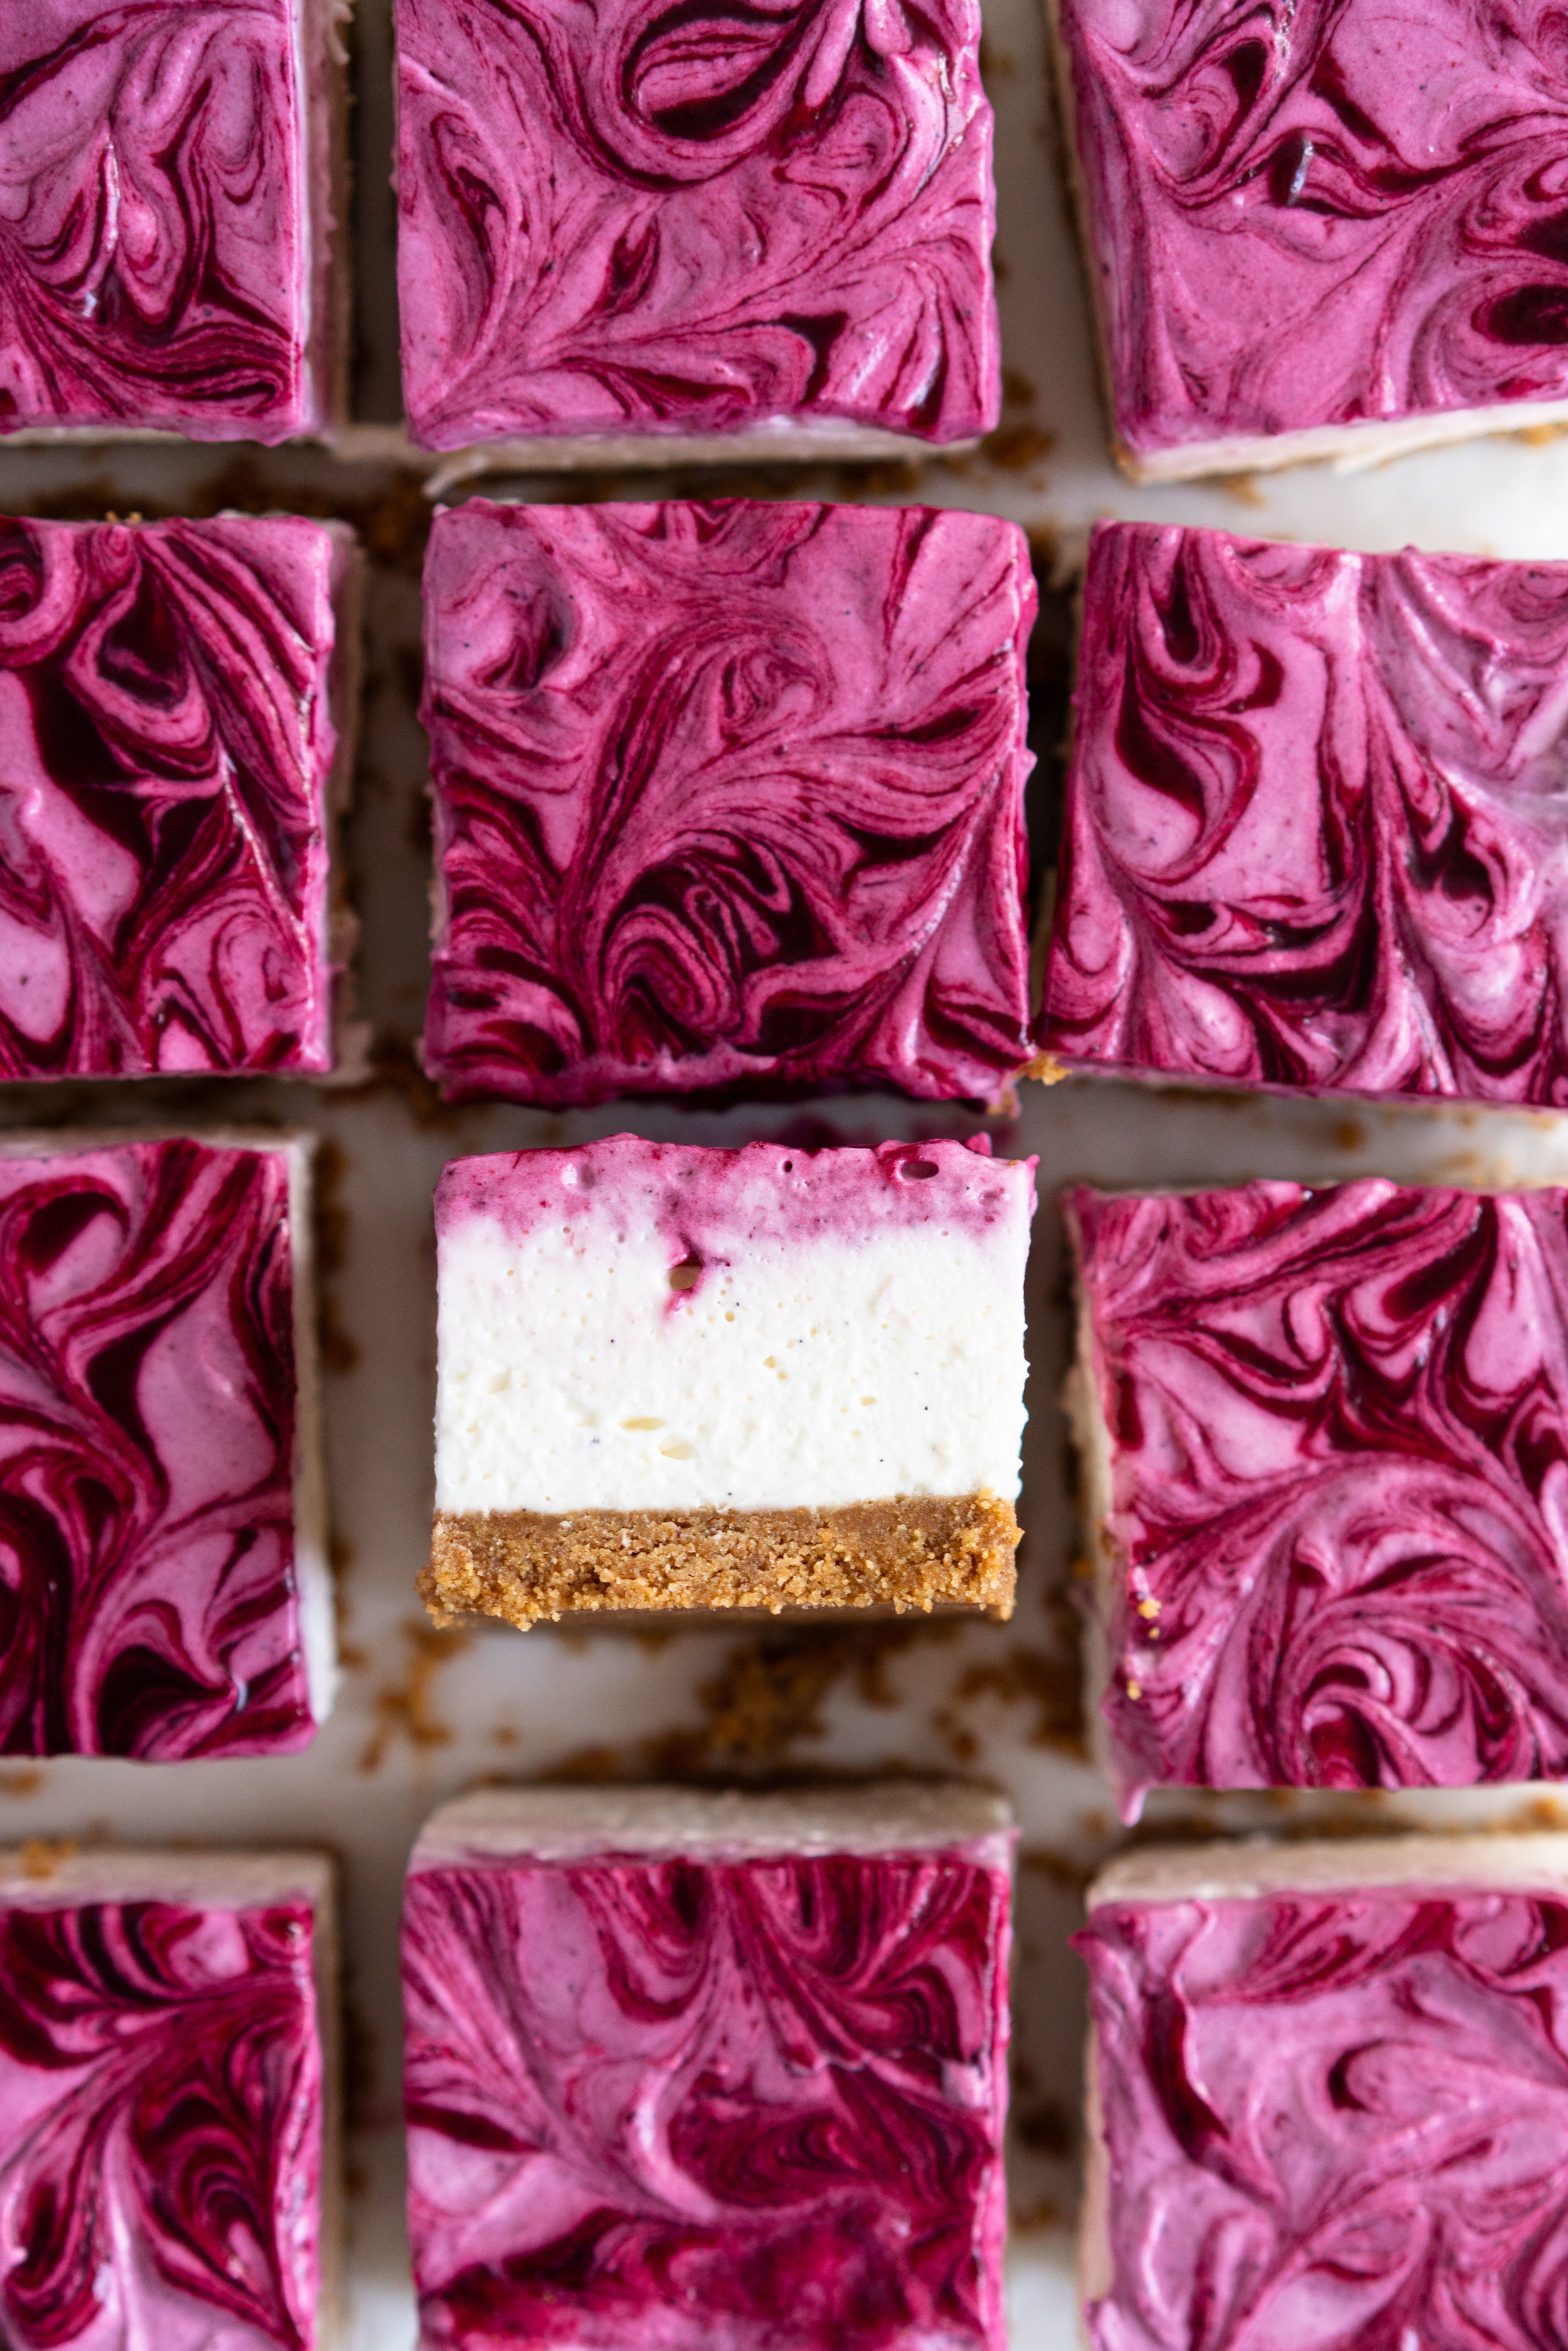 No Bake Mixed Berry Cheesecake Bars - delicious graham cracker crust, topped with a silky vanilla bean no bake filling, and finished with a beautiful marbled swirl of mixed berry coulis. perfect No bake, low effort dessert for any time of the year. #nobake #cheesecake #cheesecakebars #mixedberry #coulis